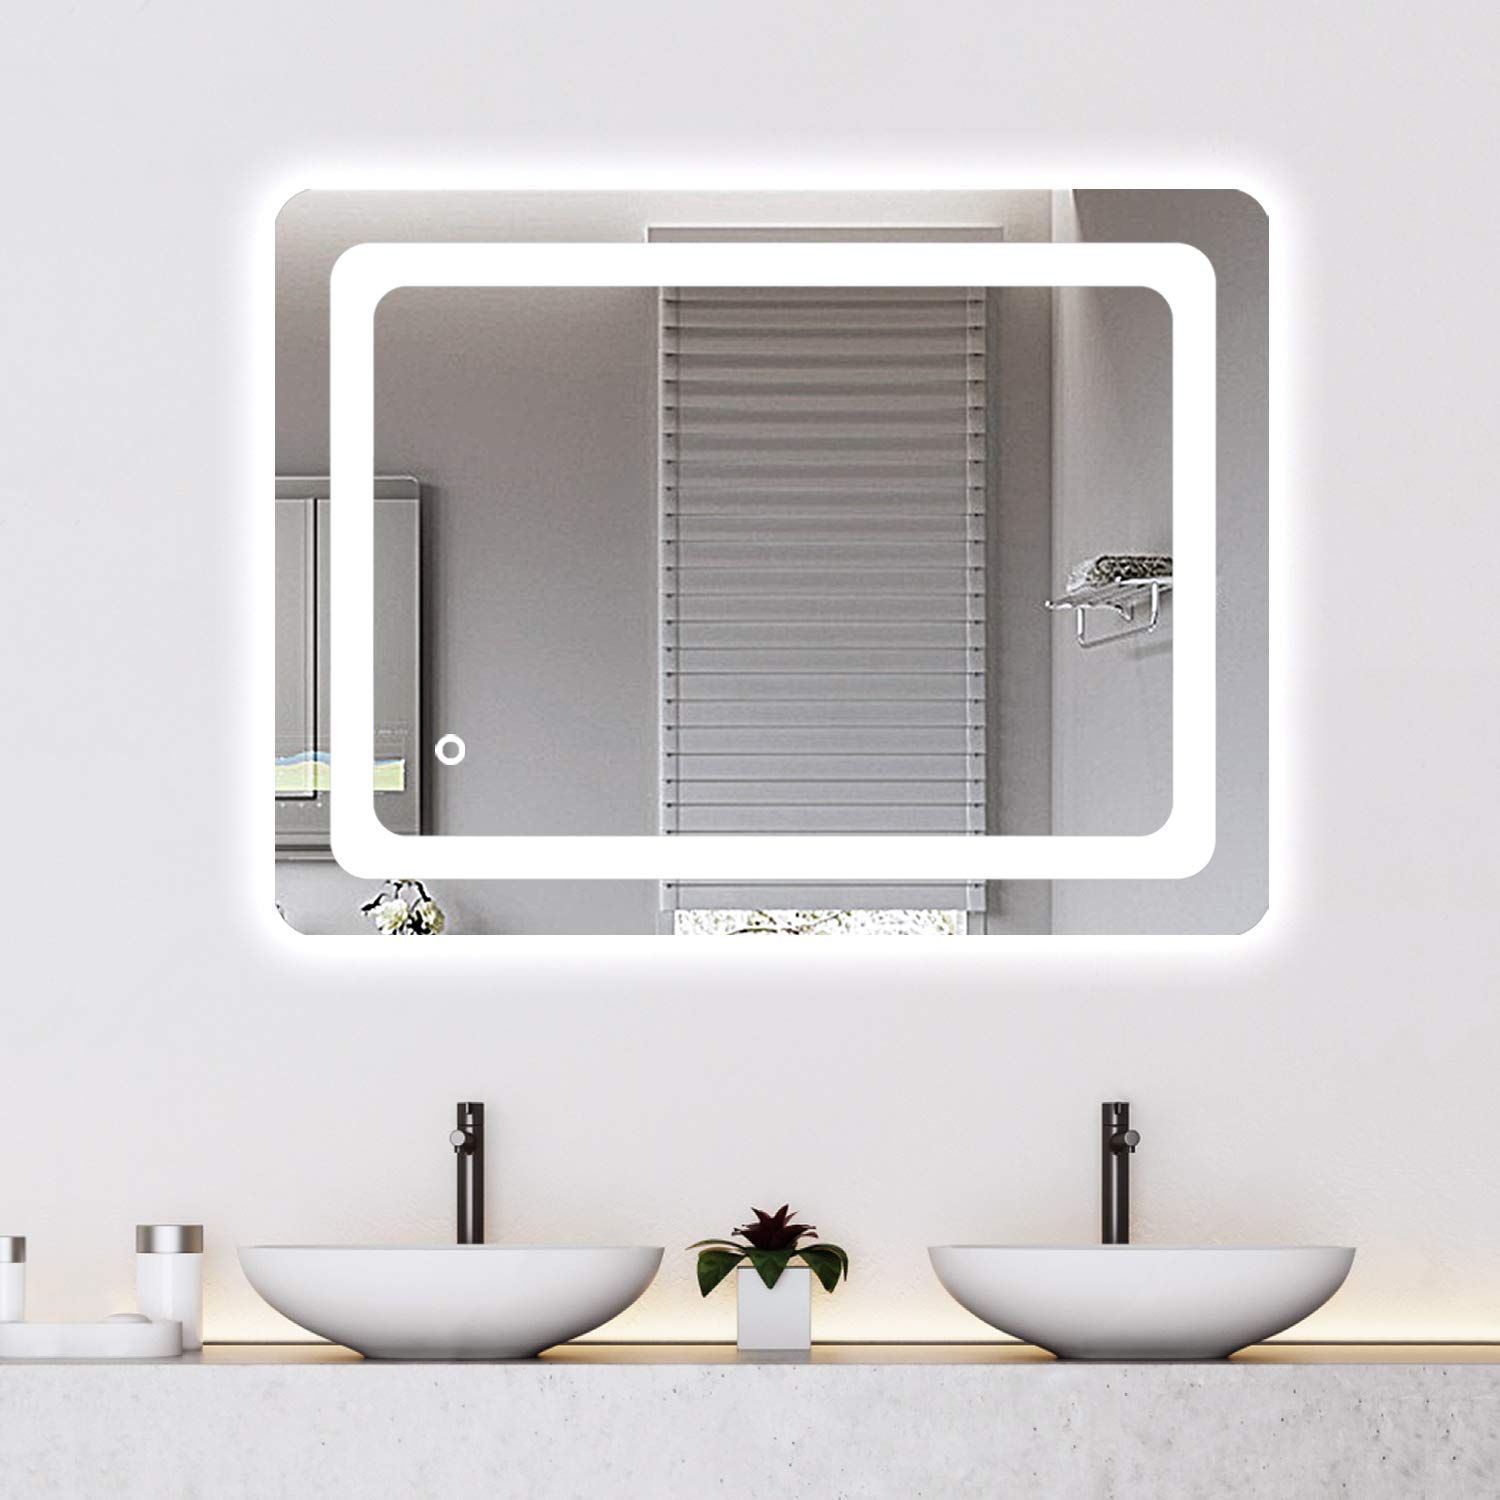 Cozy Castle Bathroom Mirror With Led Lights Lighted Makeup Vanity